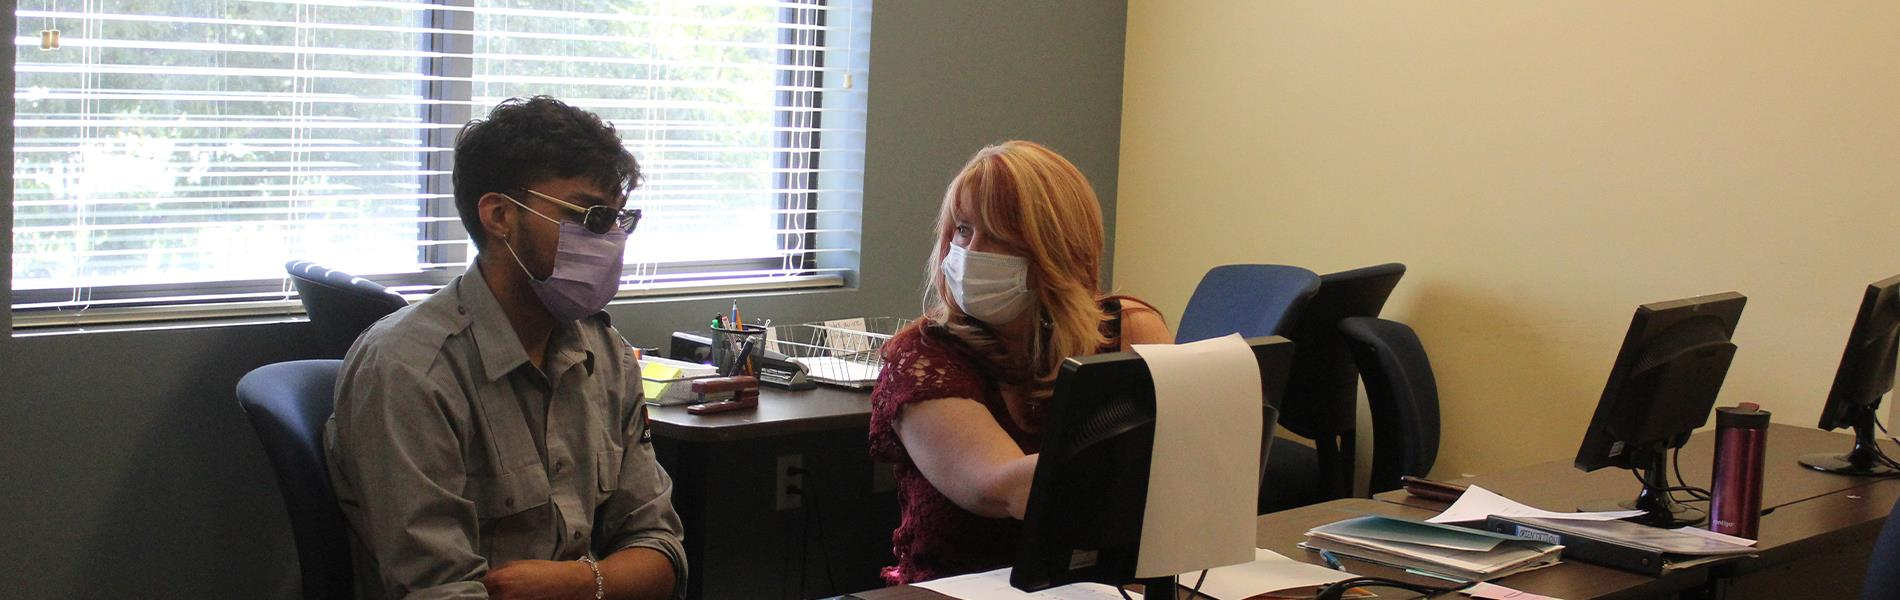 student and teacher working at computer wearing masks